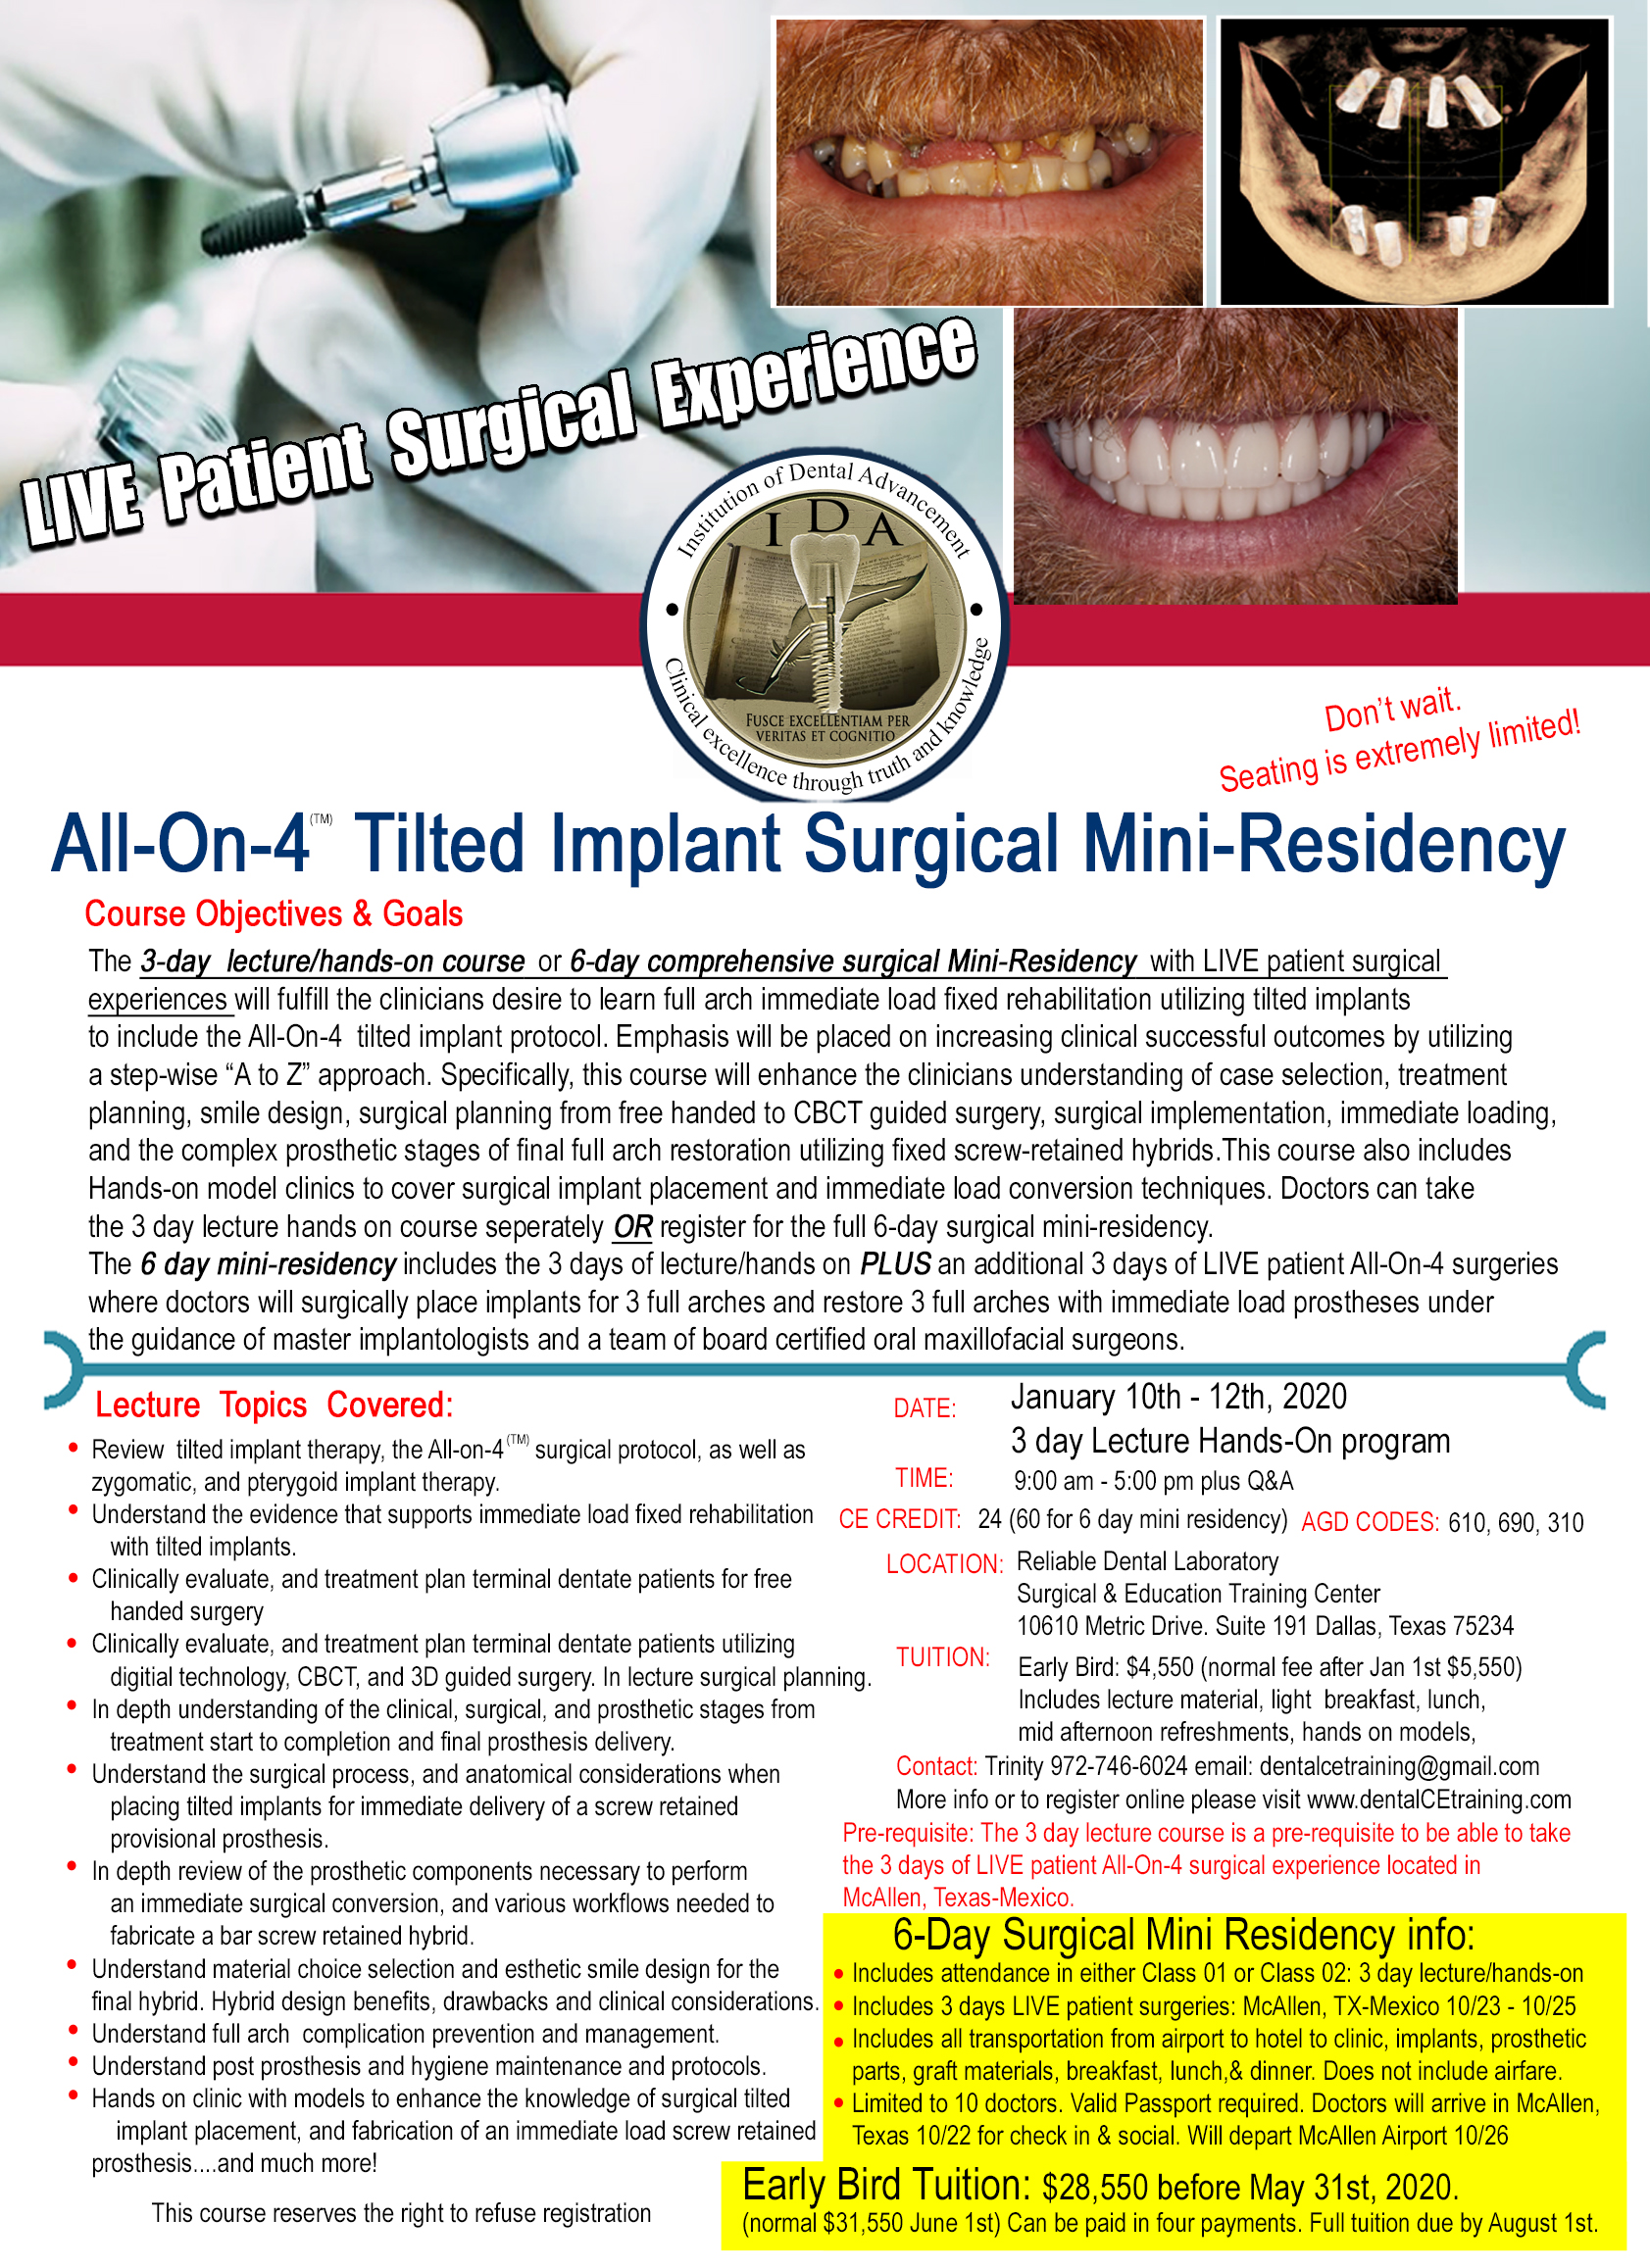 All on 4 dental implant surgical training course